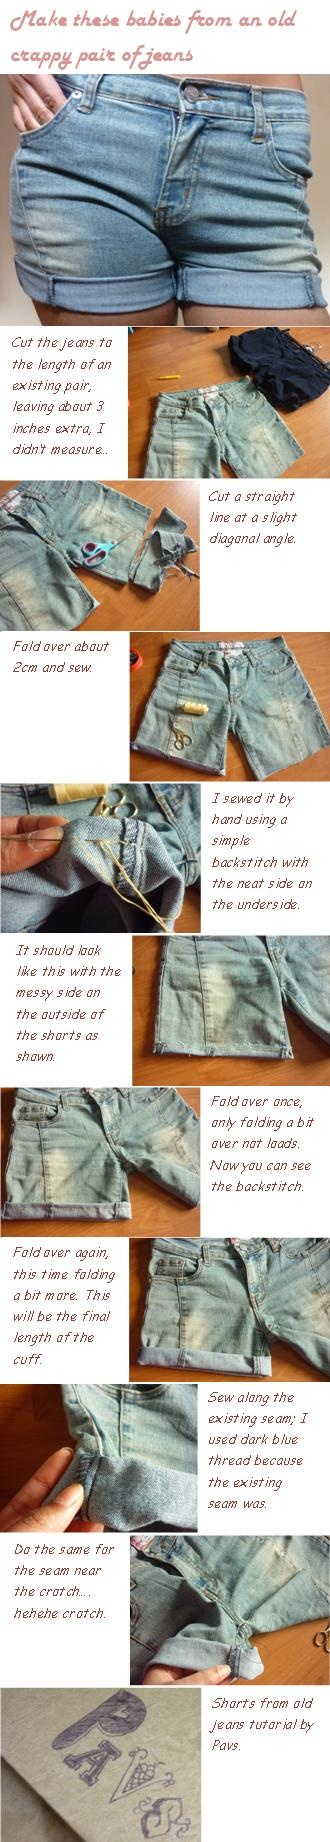 DIY shorts from old jeans: I made these jean shorts from a crappy old pair of hideous bootleg jeans I had! They'll be great for the summer